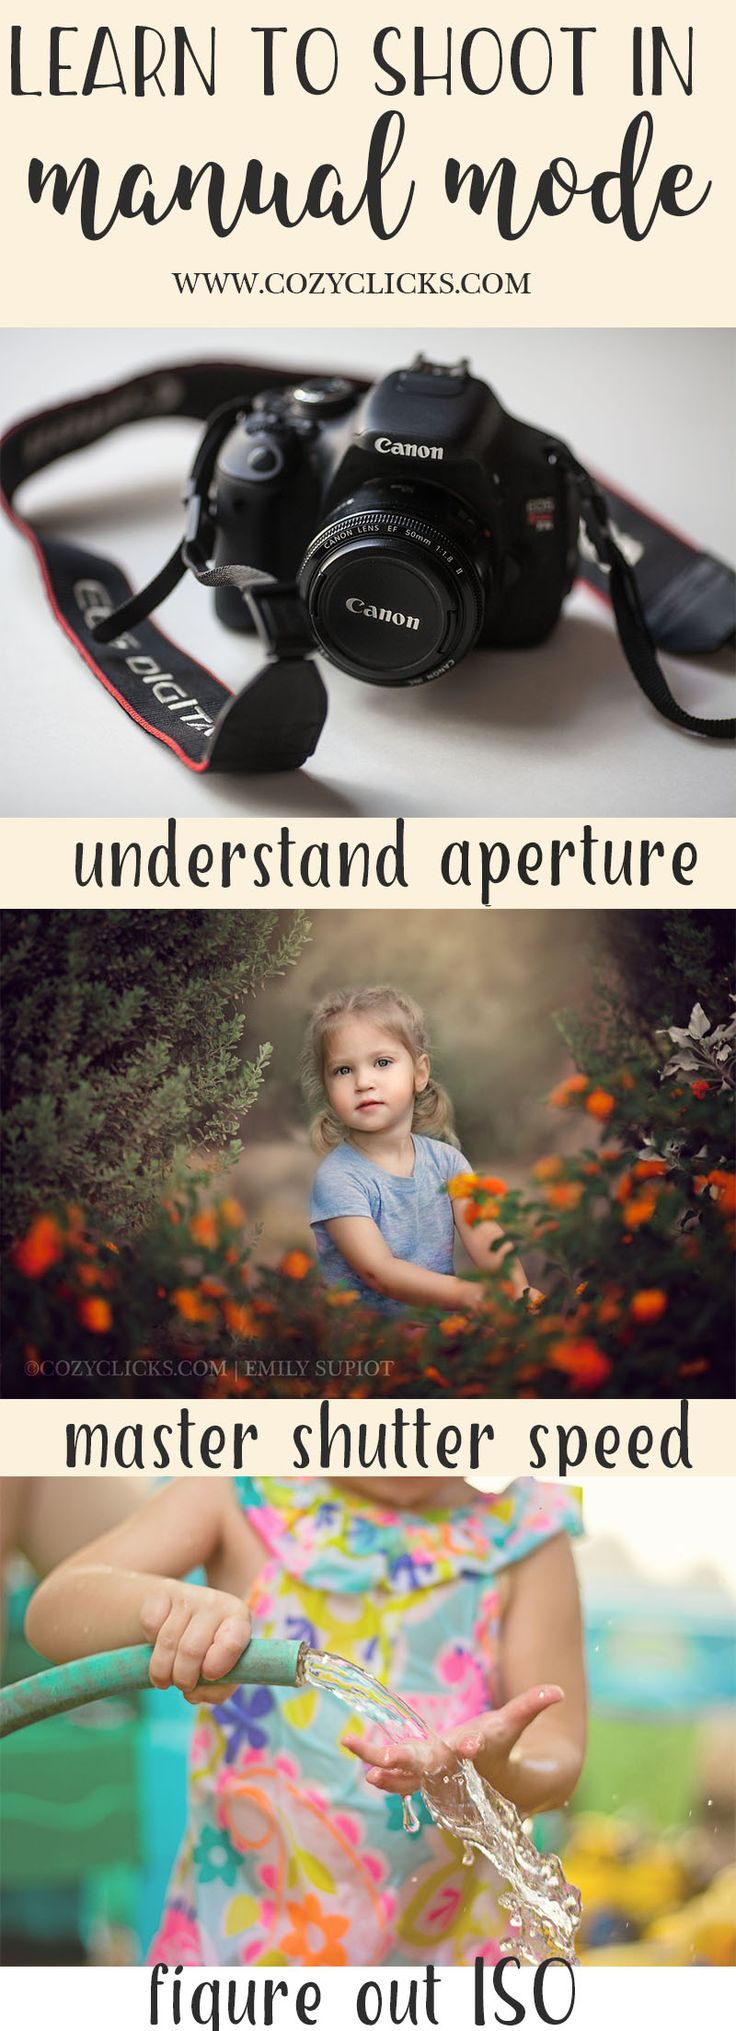 If you're a new photographer, learn the easy way to shoot in manual mode right here! Photography tips focusing on shooting in manual mode.